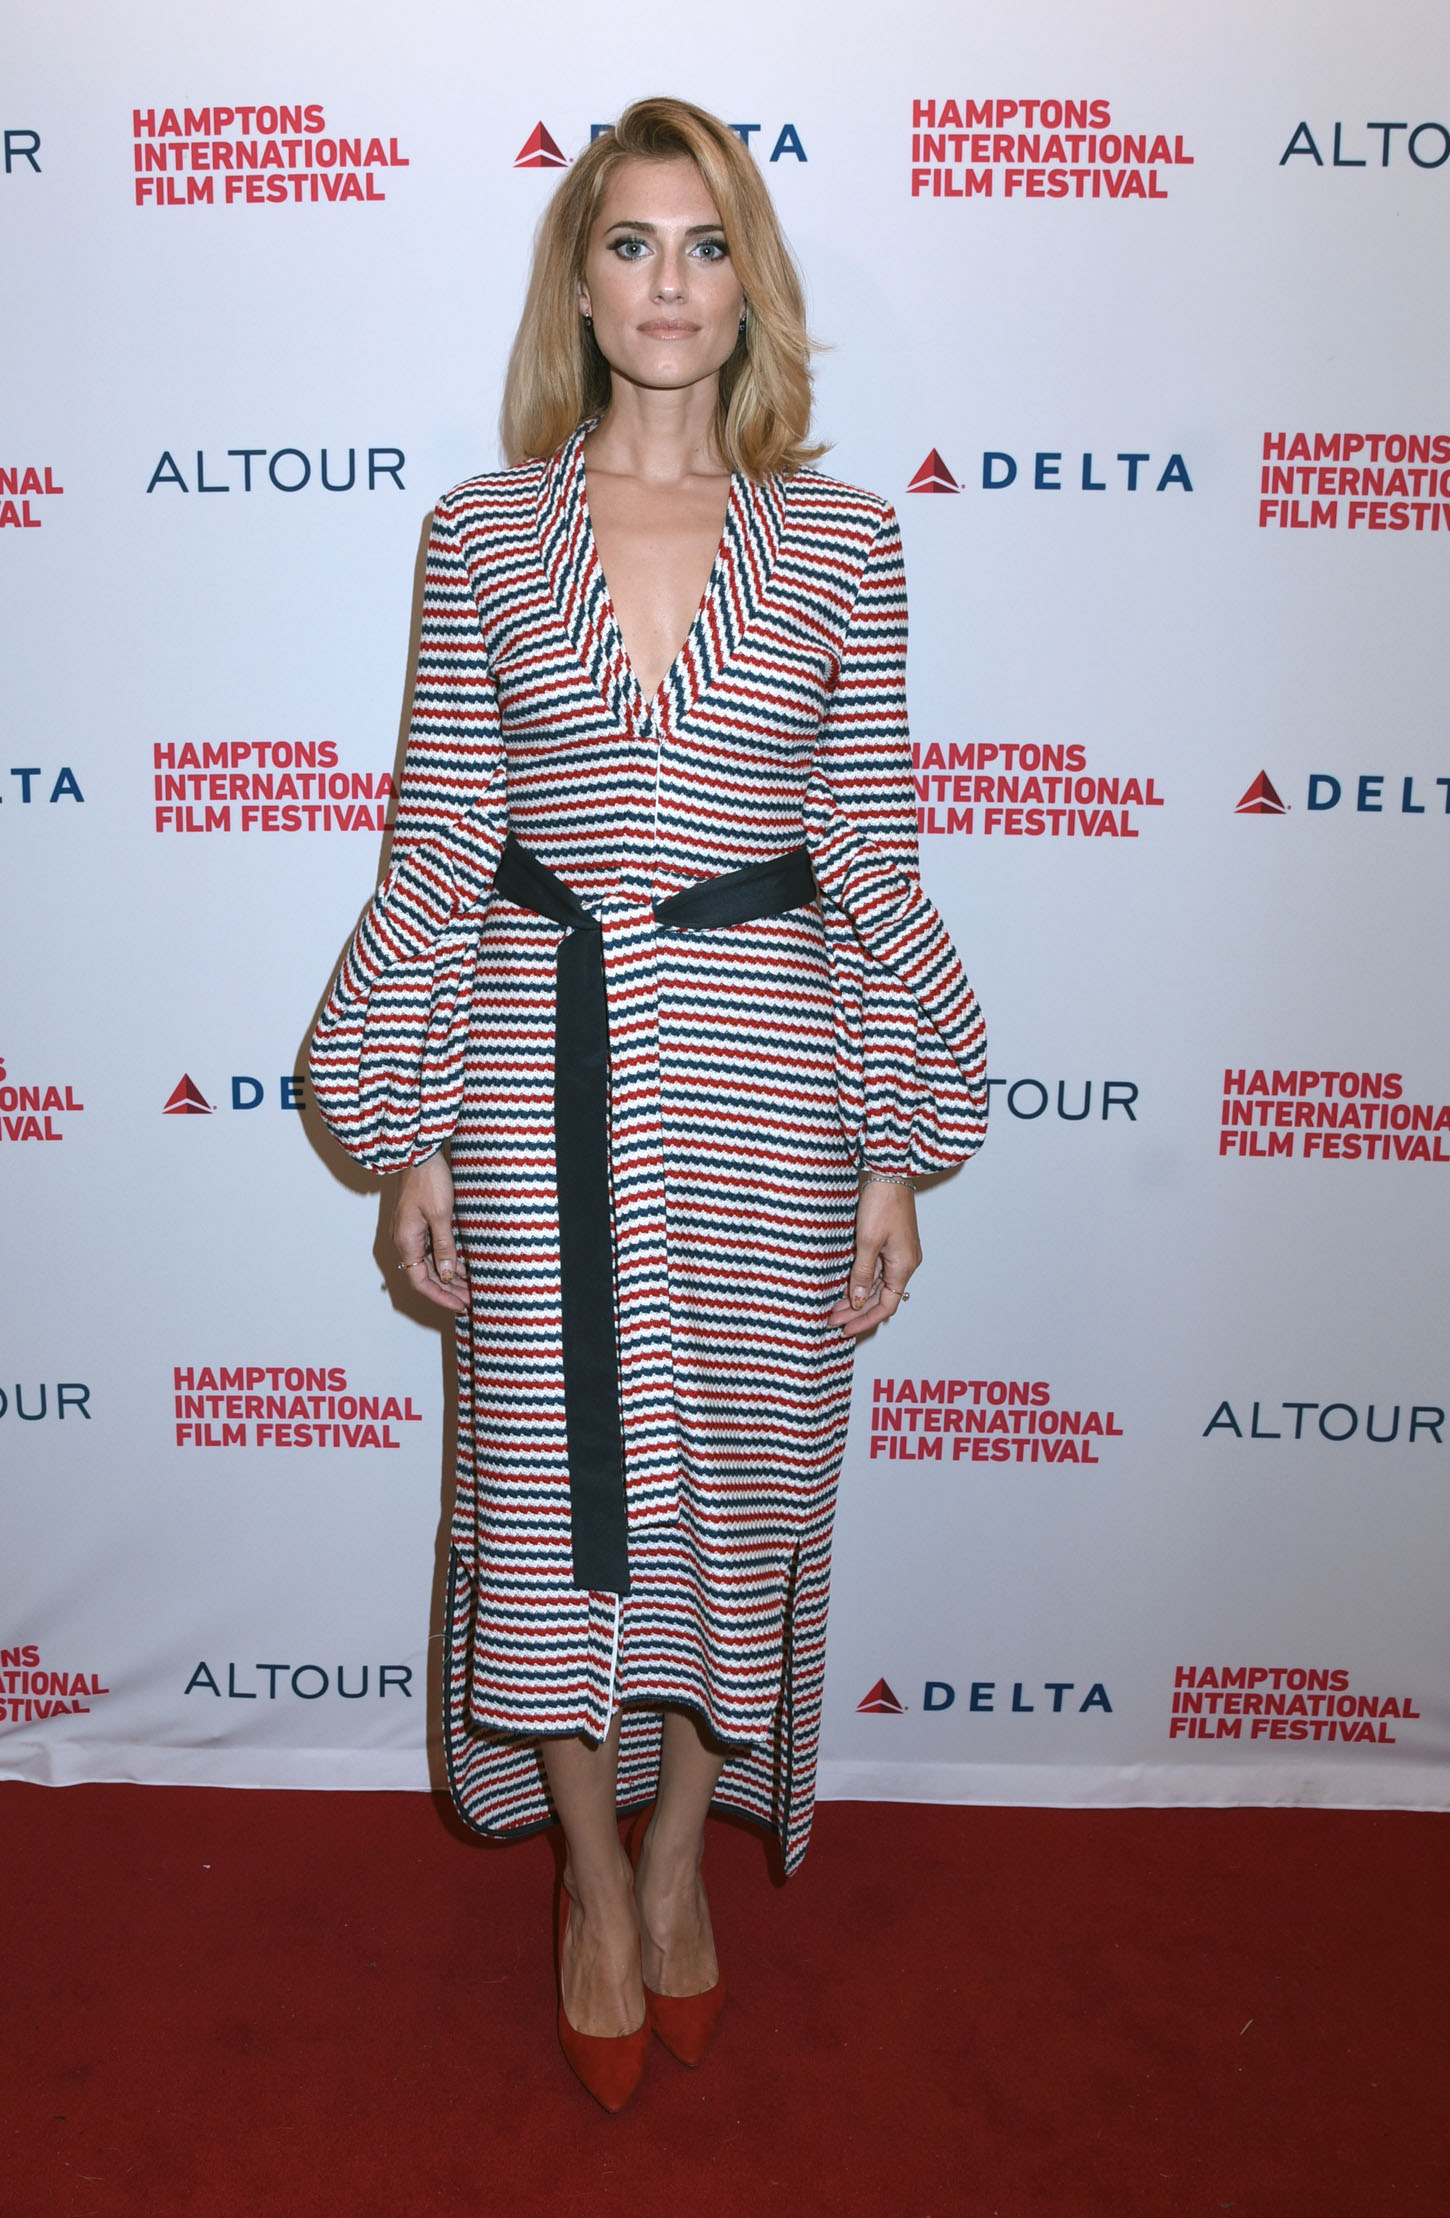 Celebrities attend the 25th Annual Hamptons International Film Festival: Anatomy of a Scene:' Get Out' held at the Bay Street Theater at Sag Harbor in New York City.  <P> Pictured: Allison Williams <B>Ref: SPL1597674  081017  </B><BR/> Picture by: Photo Image Press<BR/> </P><P> <B>Splash News and Pictures</B><BR/> Los Angeles:310-821-2666<BR/> New York:212-619-2666<BR/> London:870-934-2666<BR/> <span id=